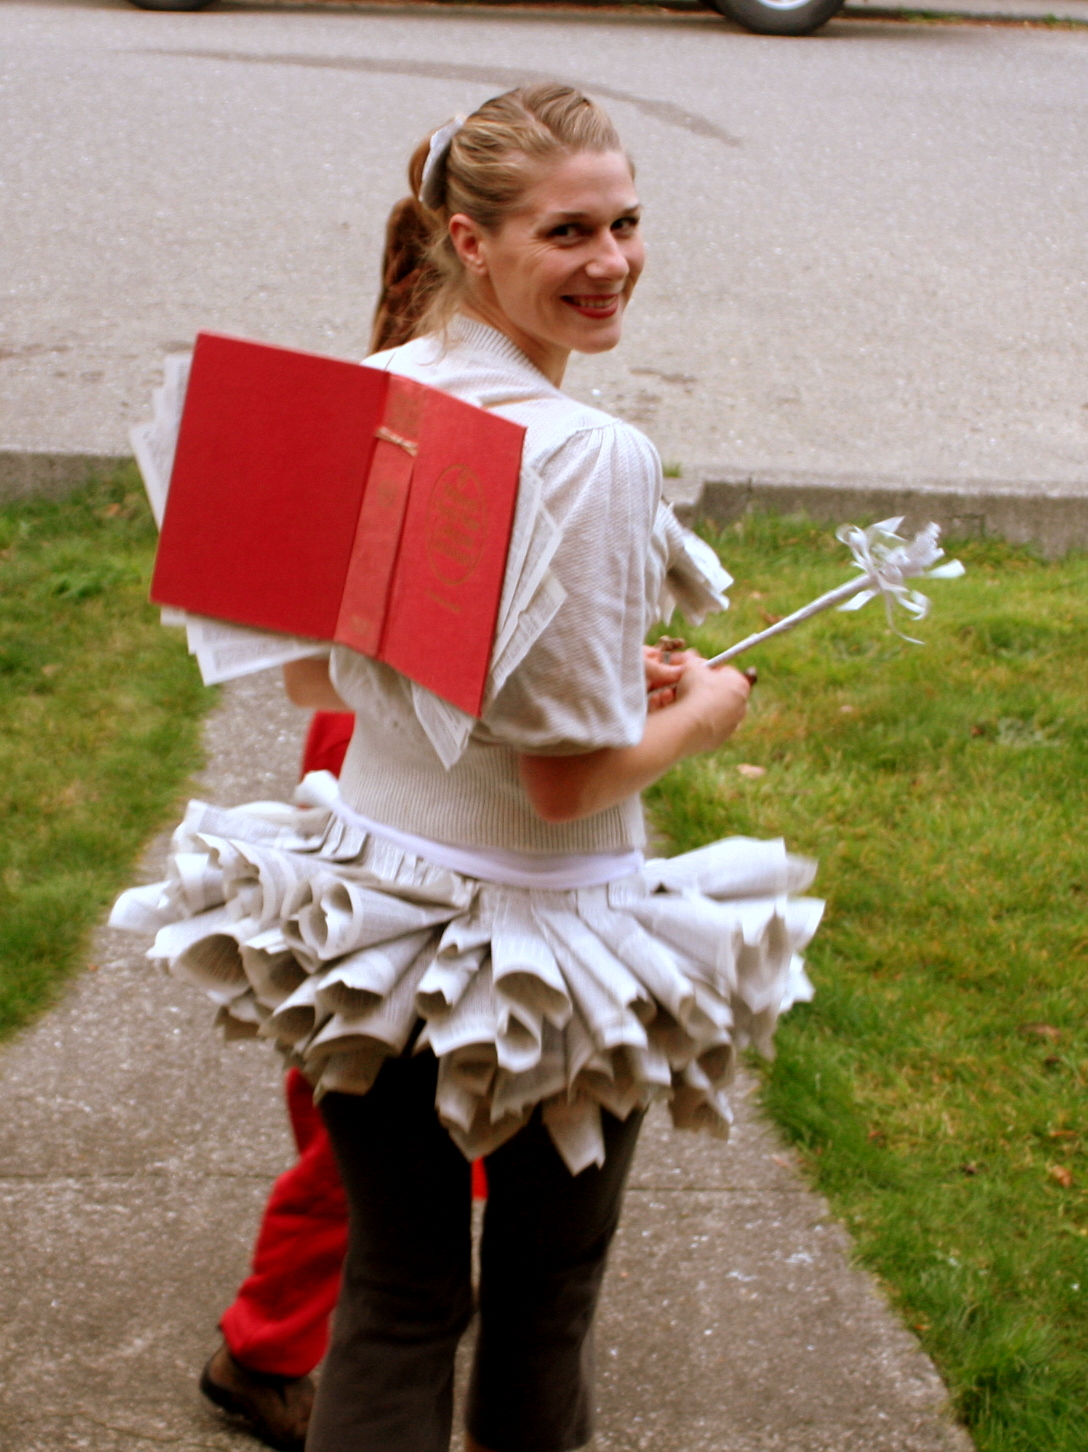 hazel and company: Homemade Halloween Costume Ideas - Easy Dress Up Ideas For Adults